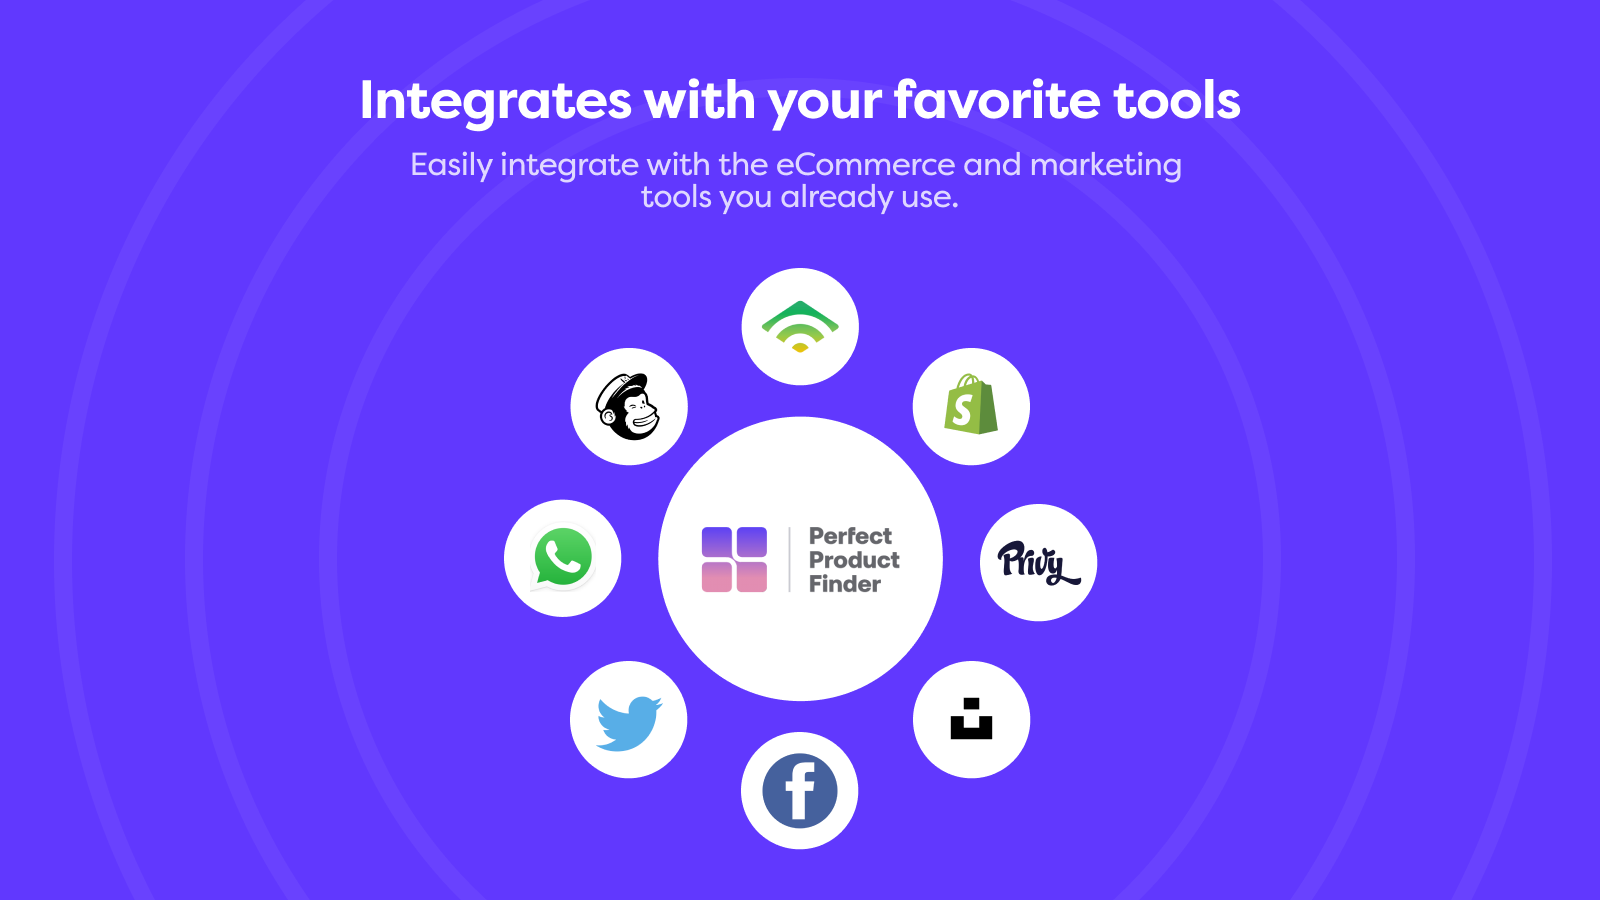 Integrates with your favorite tools